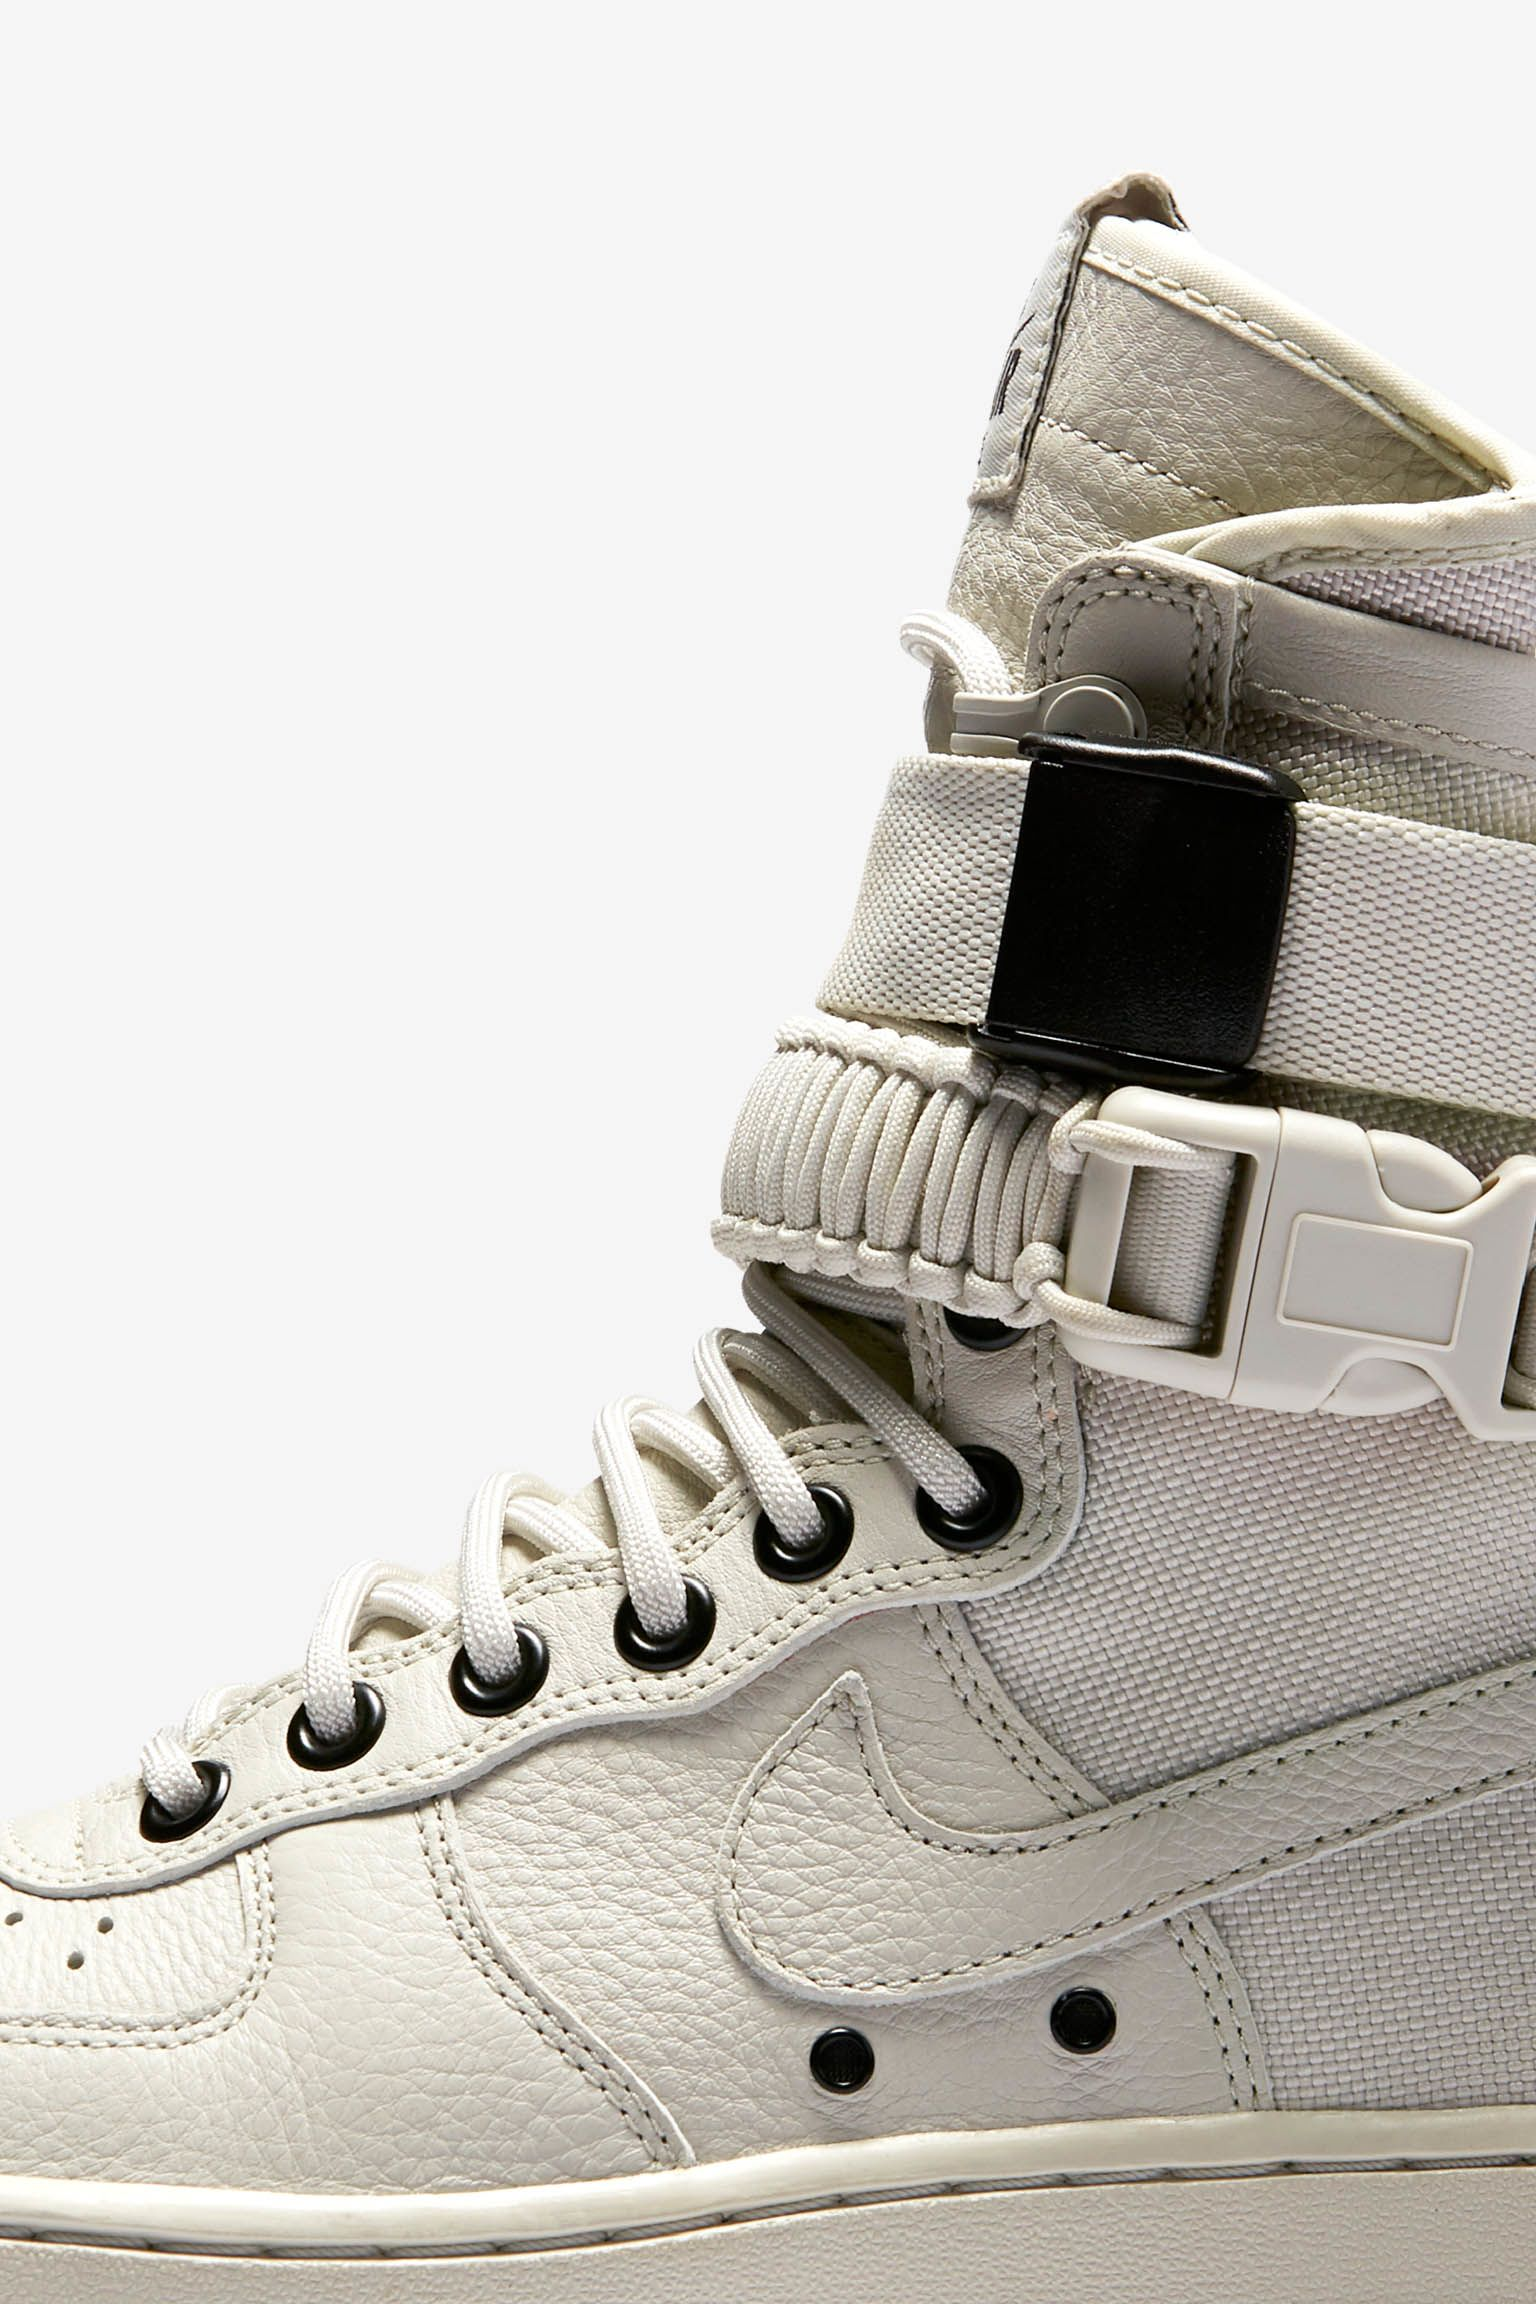 Women's Nike Special Field Air Force 1 'Light Bone & Sail'. Release Date